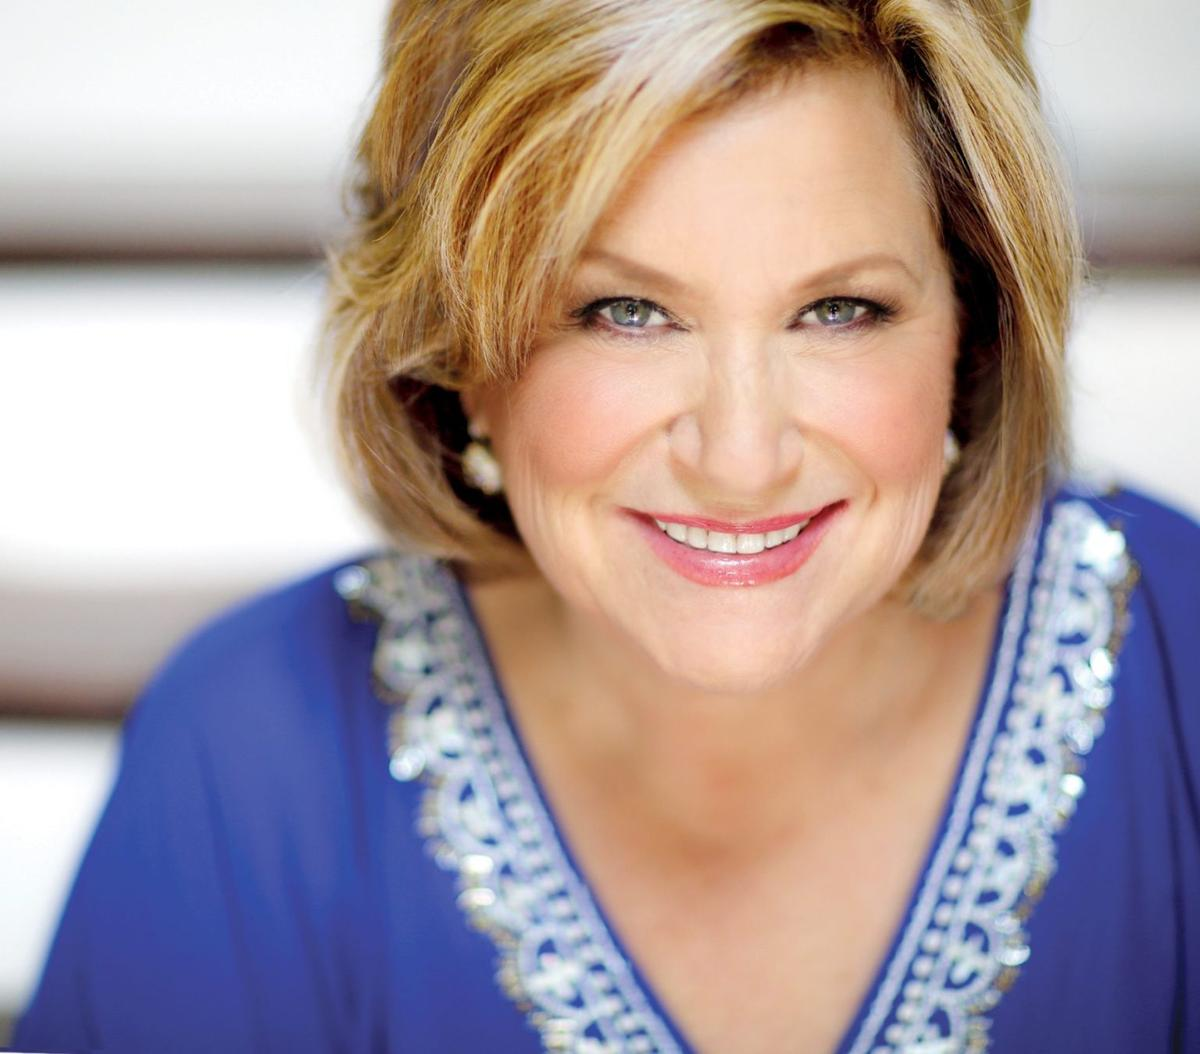 Sandi pattys first husband - Christian Singer Sandi Patty Nicknamed The Voice By Some For Her Four Octave Range Revisits Her Long Celebrated Career In A Forever Grateful The